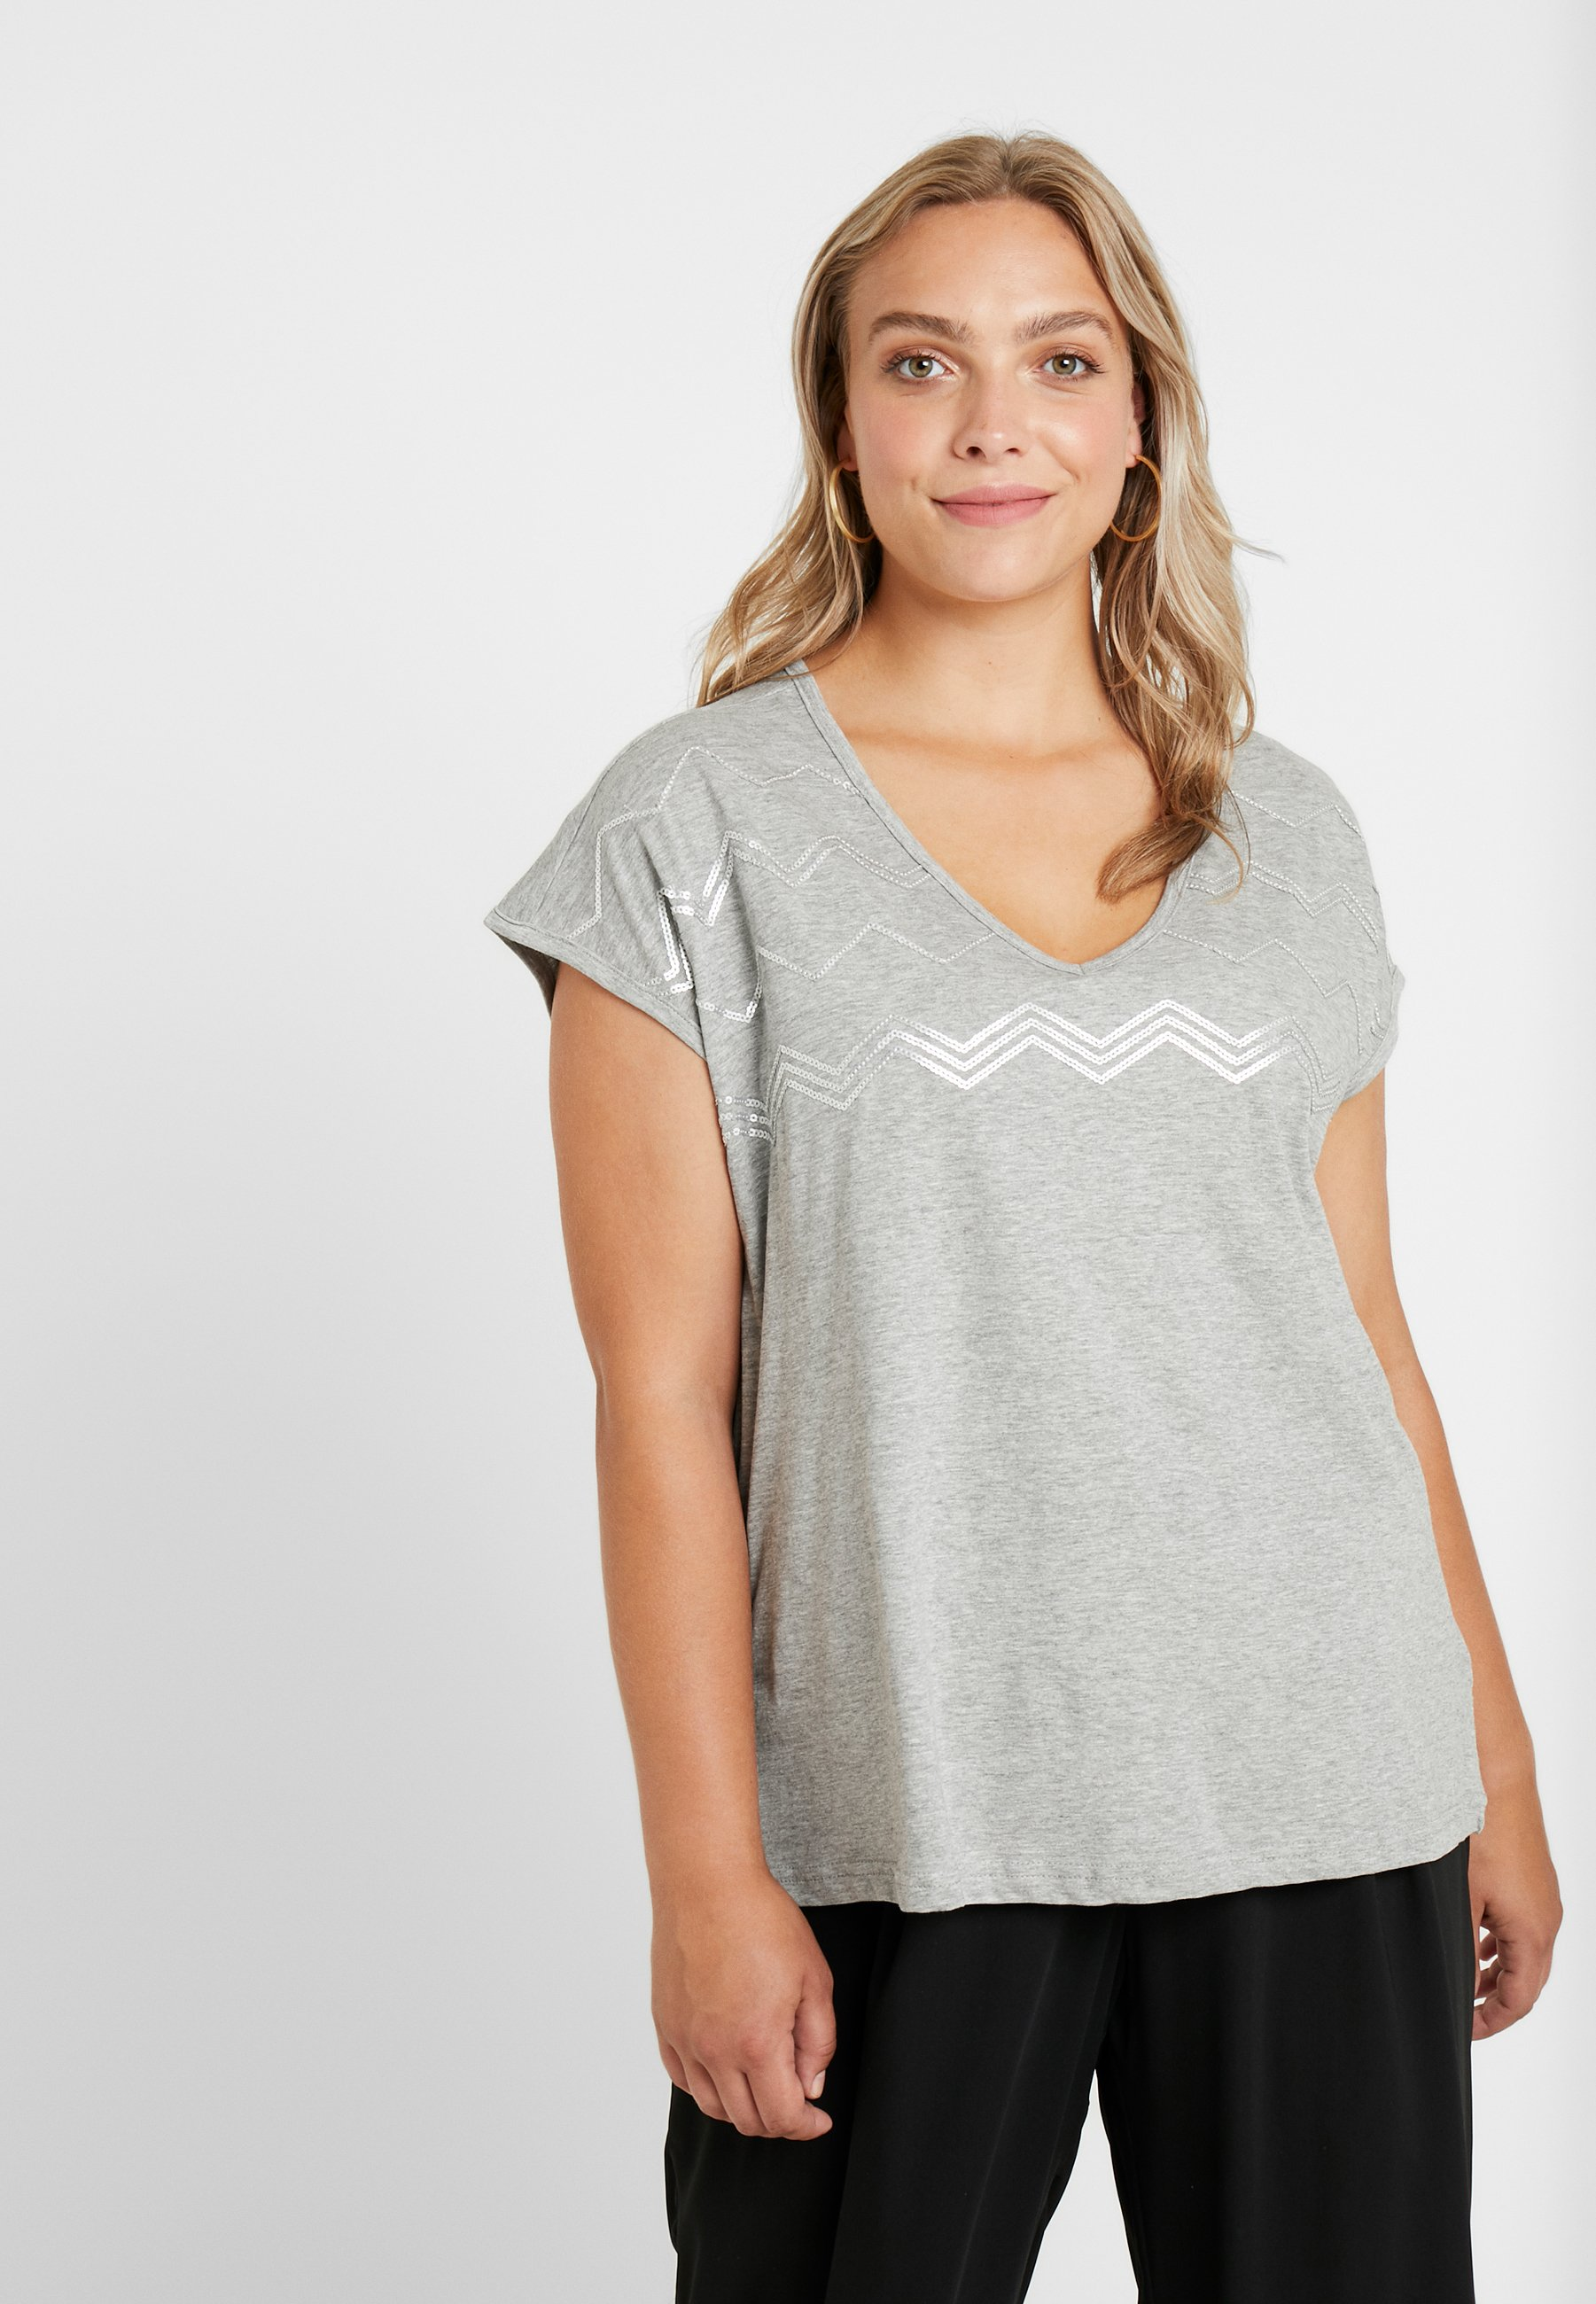 Melange Mjolie shirt Light Grey SequinT Zizzi Imprimé Ov8Pym0Nnw